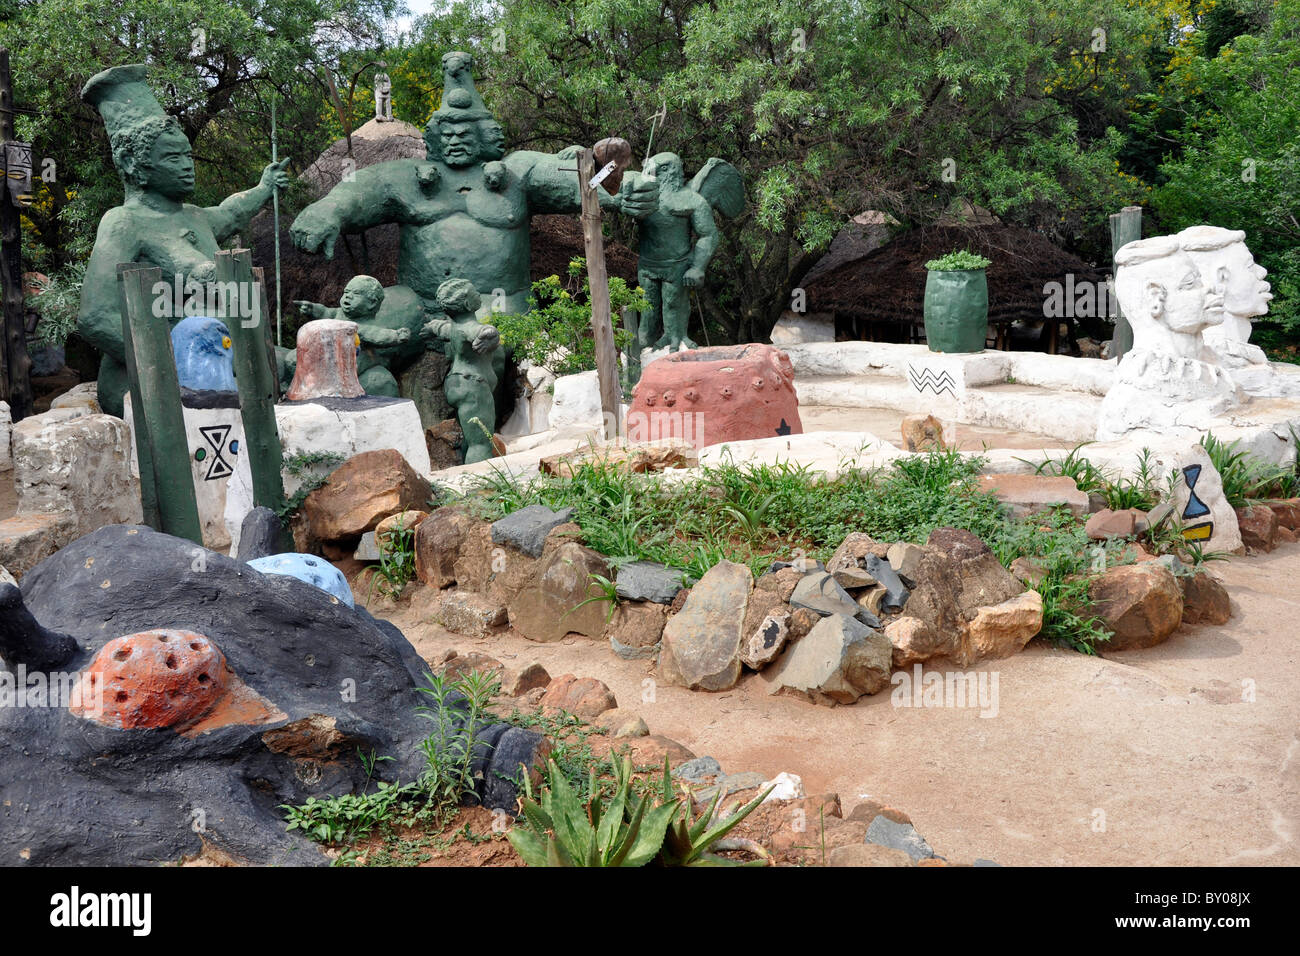 Credo Mutwa Cultural Village, Soweto, Johannesburg, South Africa Stock Photo